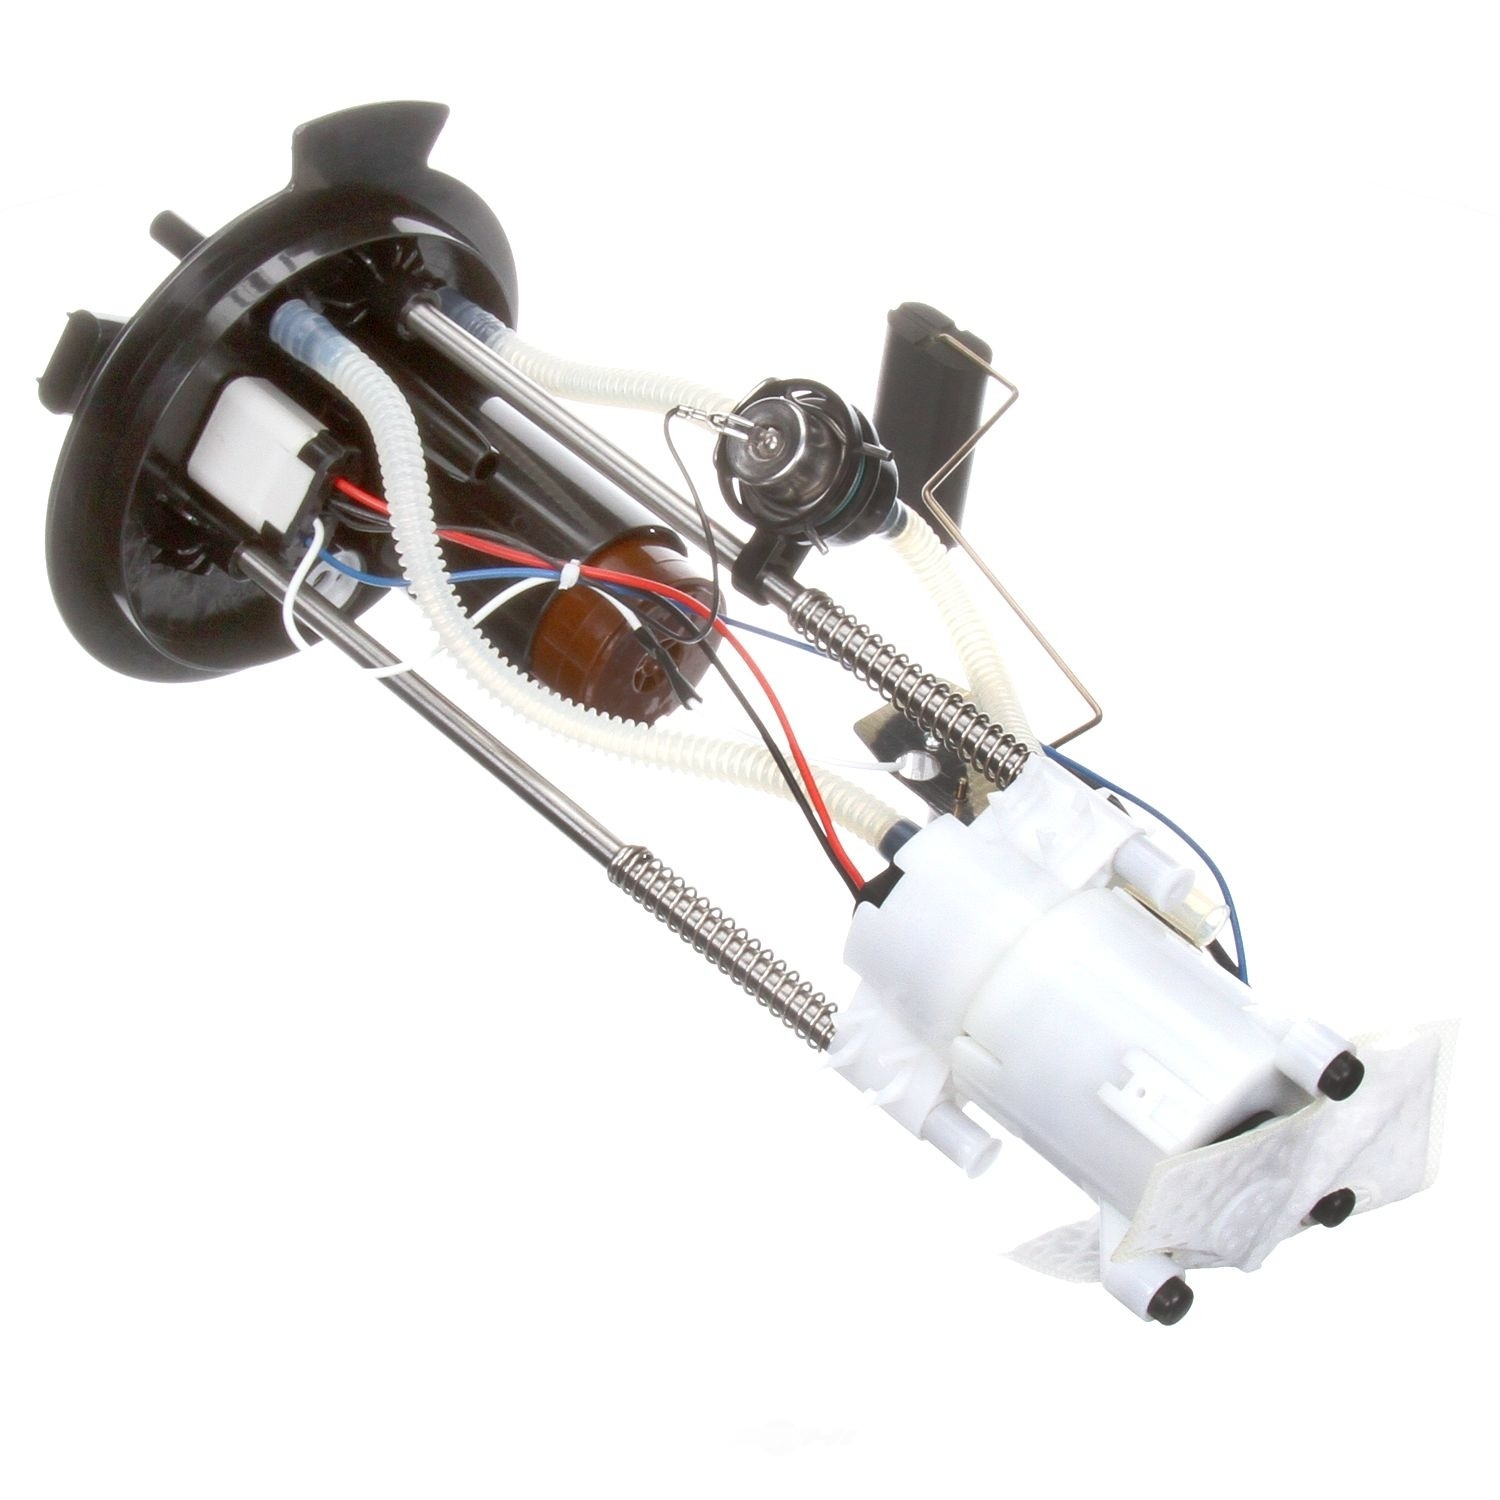 DELPHI - Fuel Pump Module Assembly - DPH FG0884